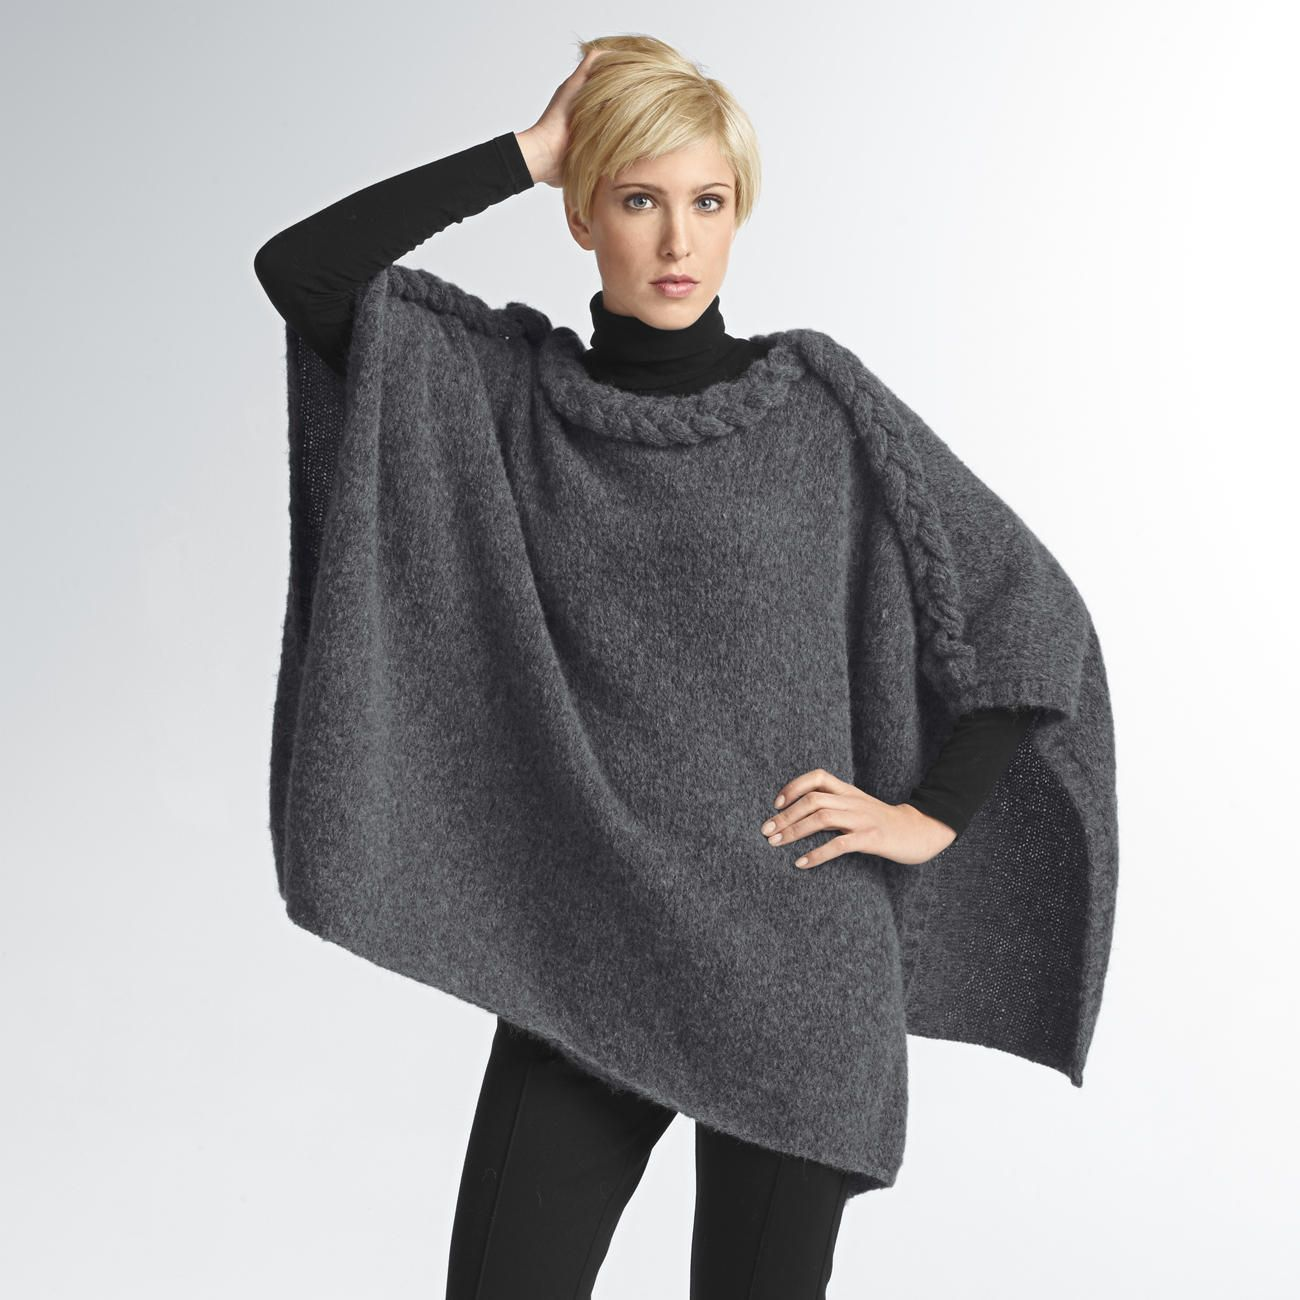 Modell 1294 Poncho Aus Fluffetto Von Junghans Wolle Ponchos